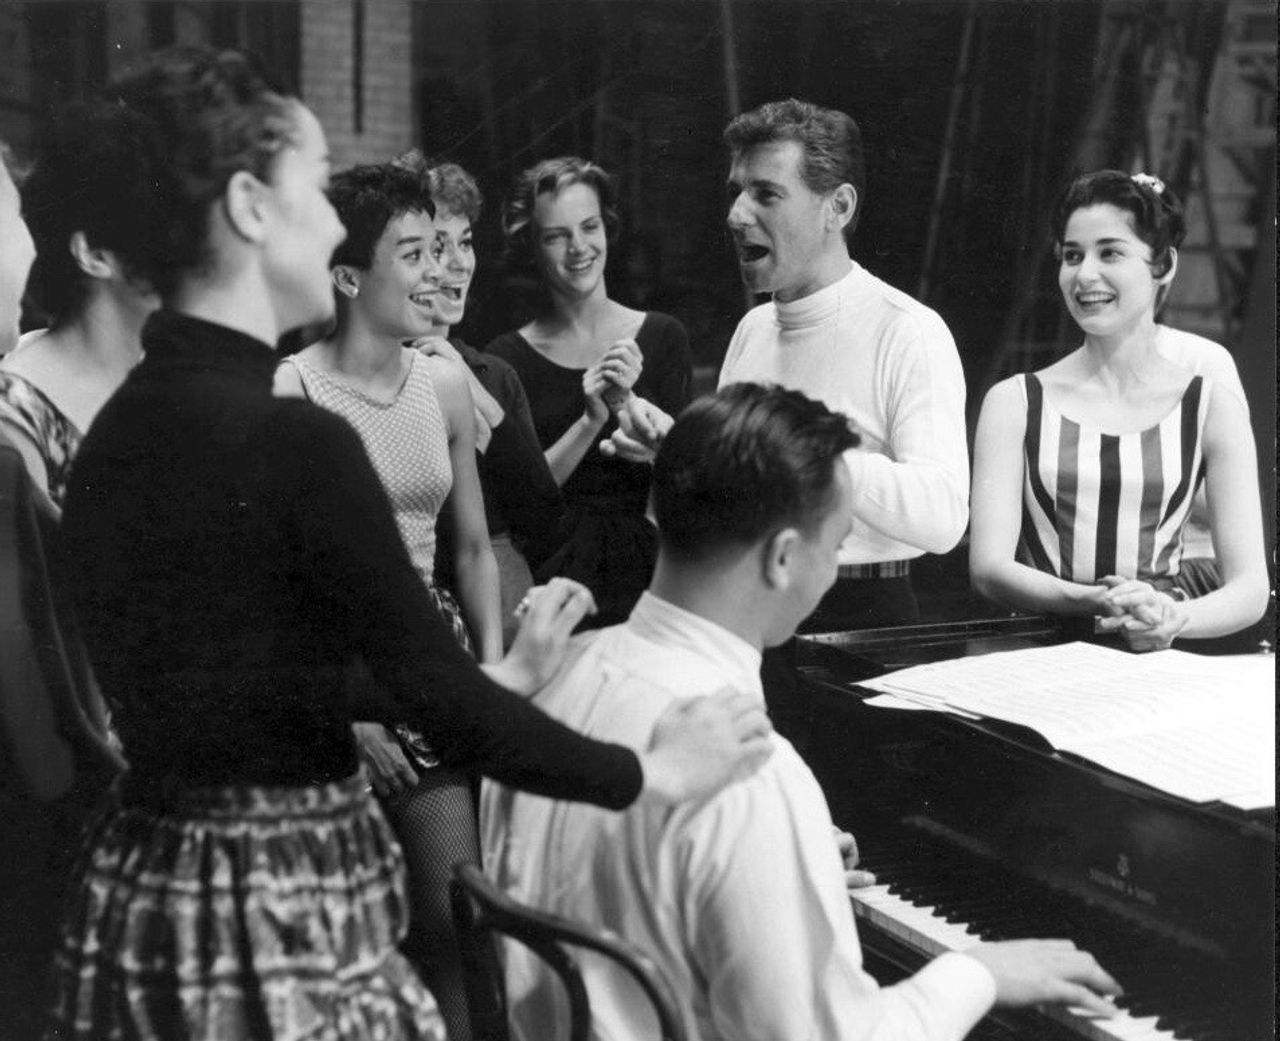 Bernstein at rehearsal for West Side Story. Carol Lawrence (who played Maria) is at his left, and lyricist Stephen Sondheim is playing the piano, 1957